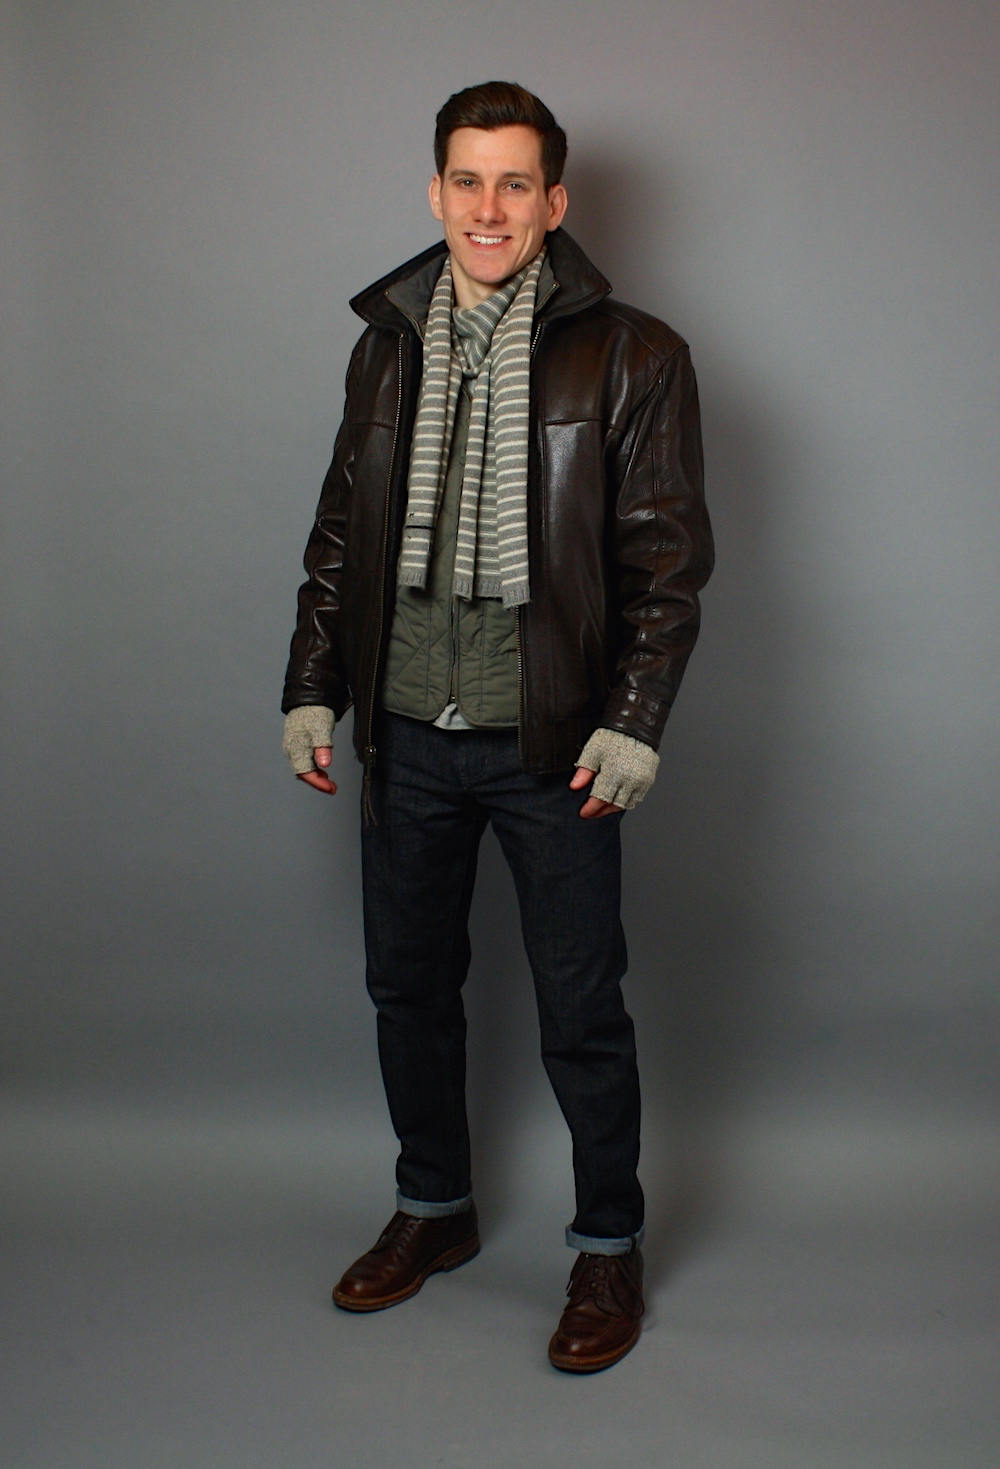 Of course, there are many different types of leather jackets. Some are